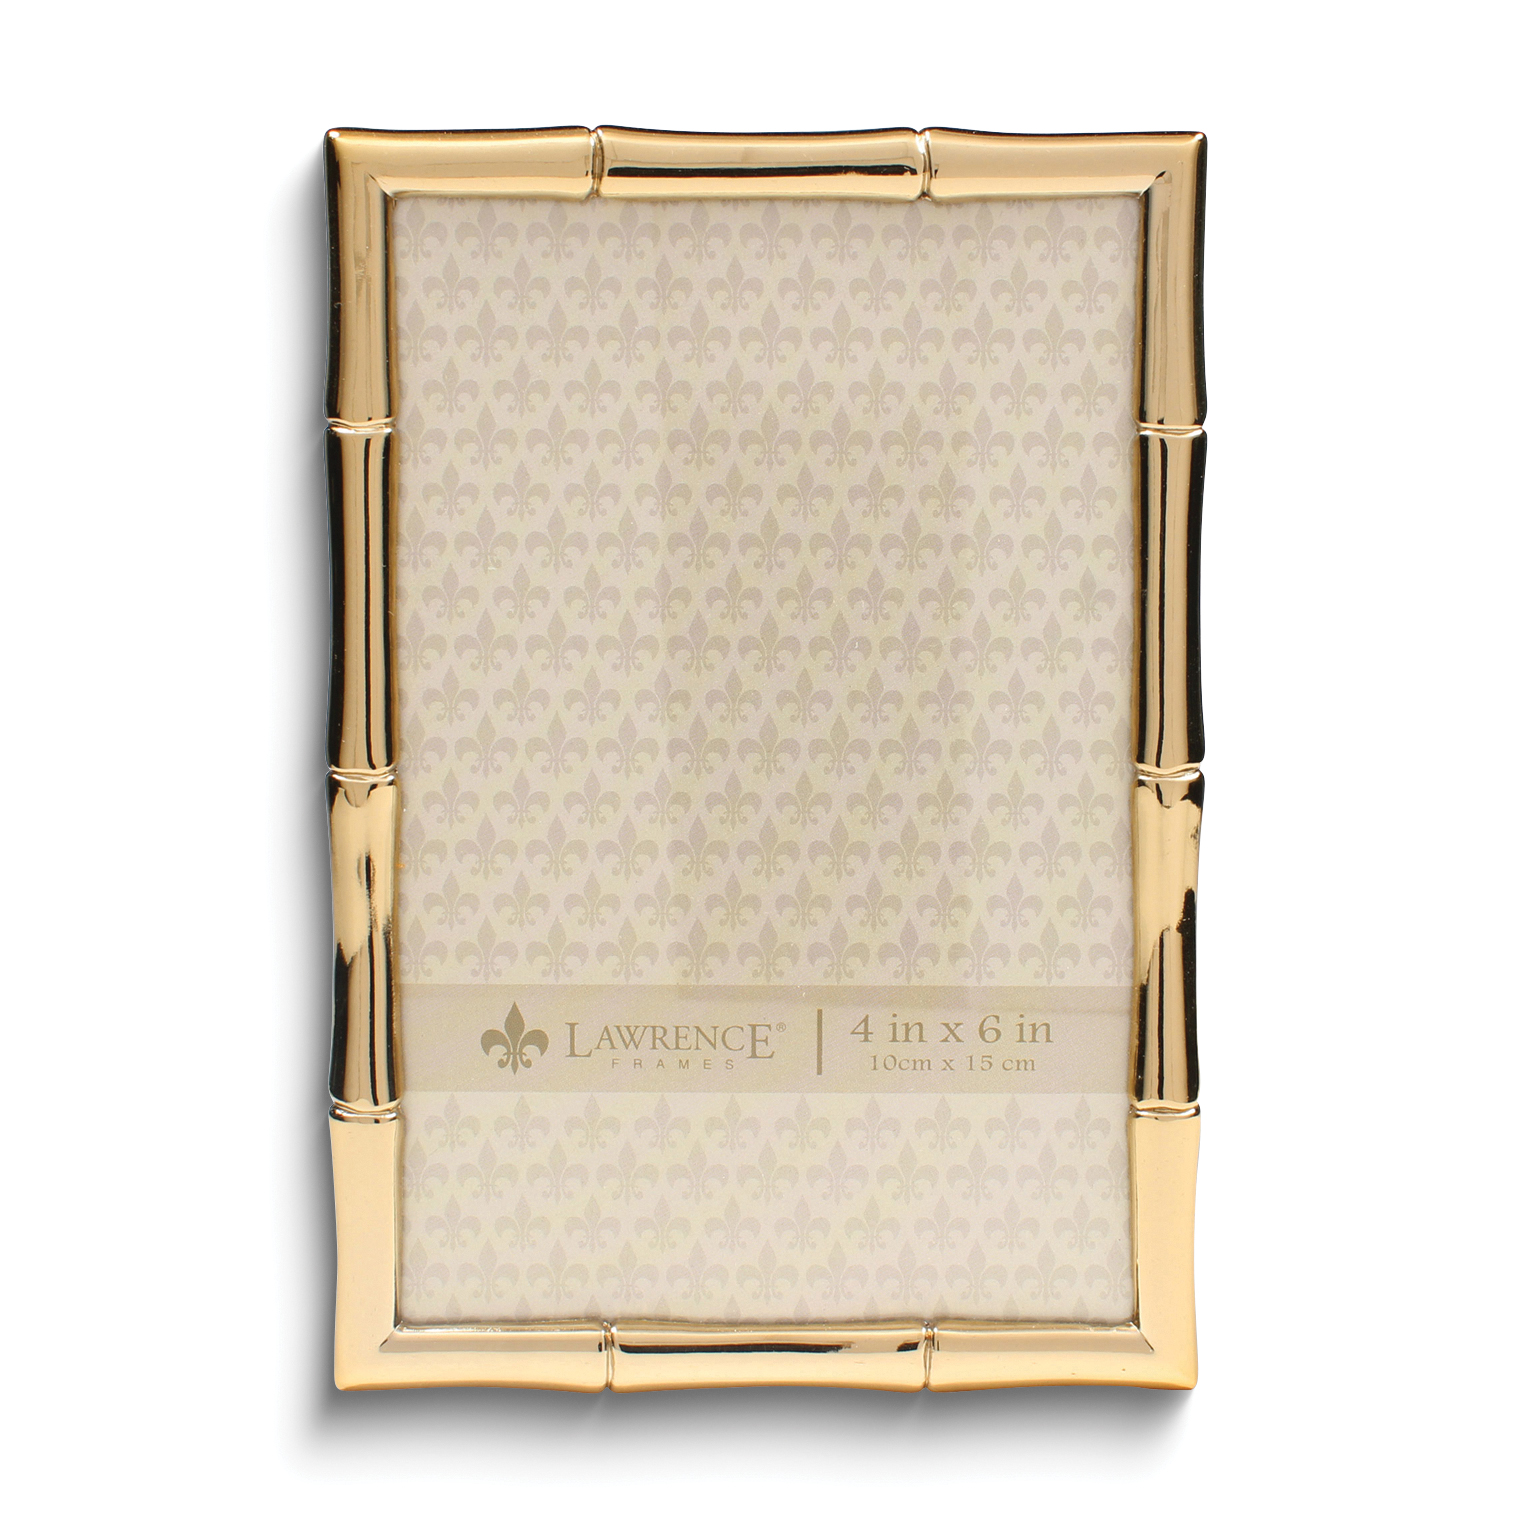 Lawrence Frames 4x6 Gold Metal Picture Frame With Bamboo Design | eBay